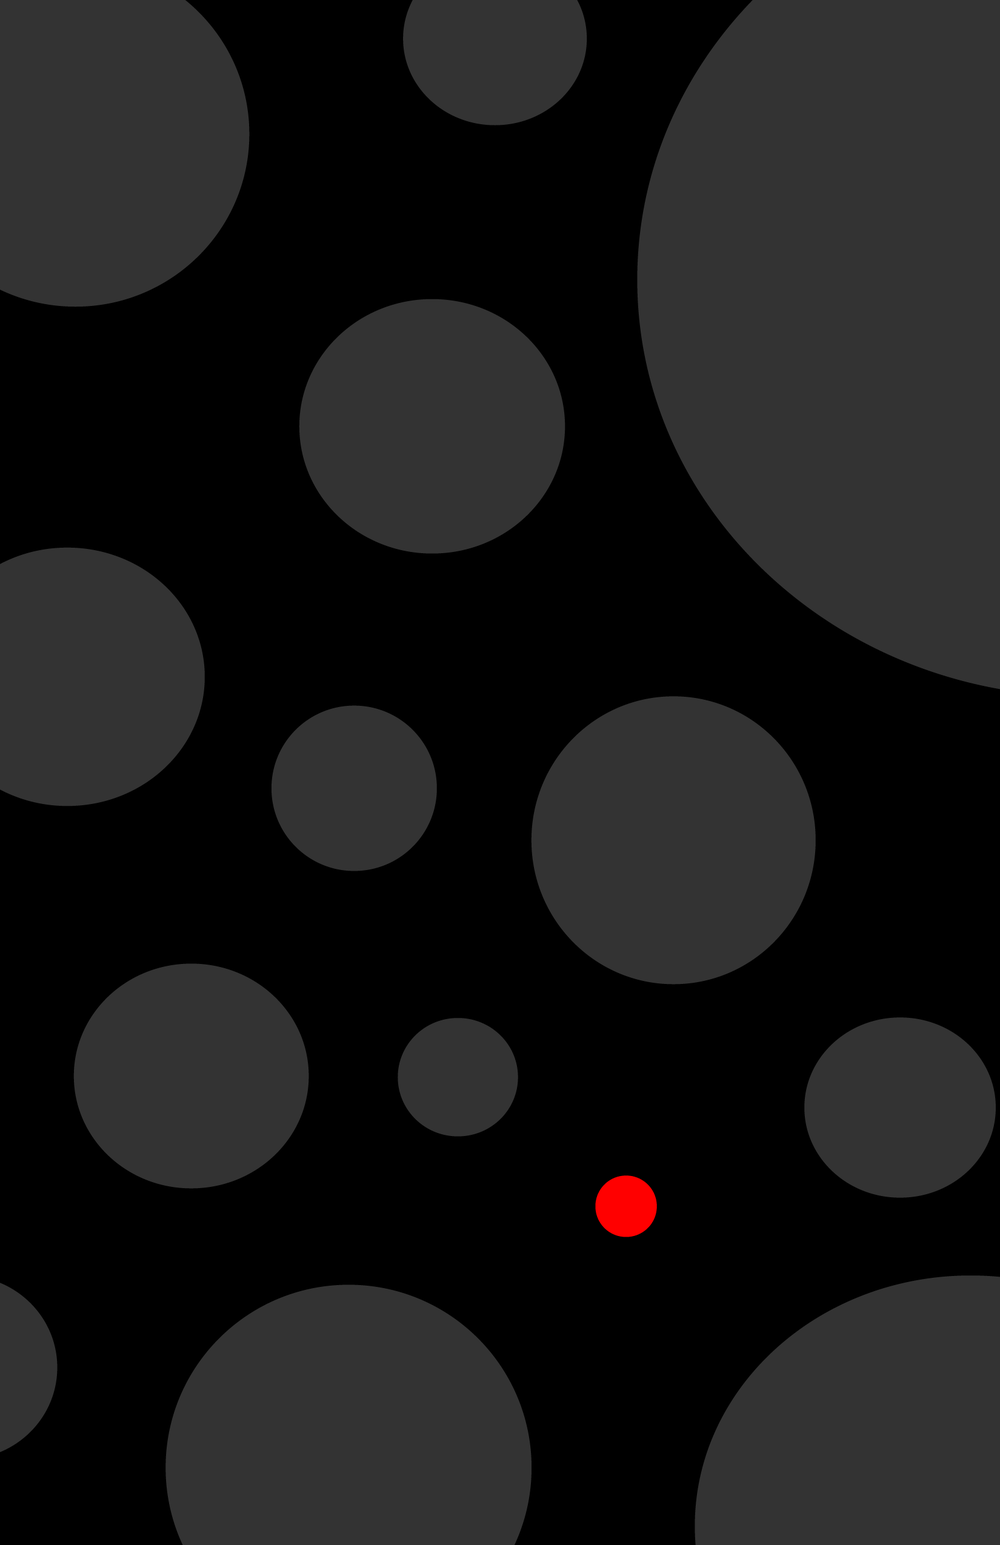 Small_Red_Dot_2-01.png